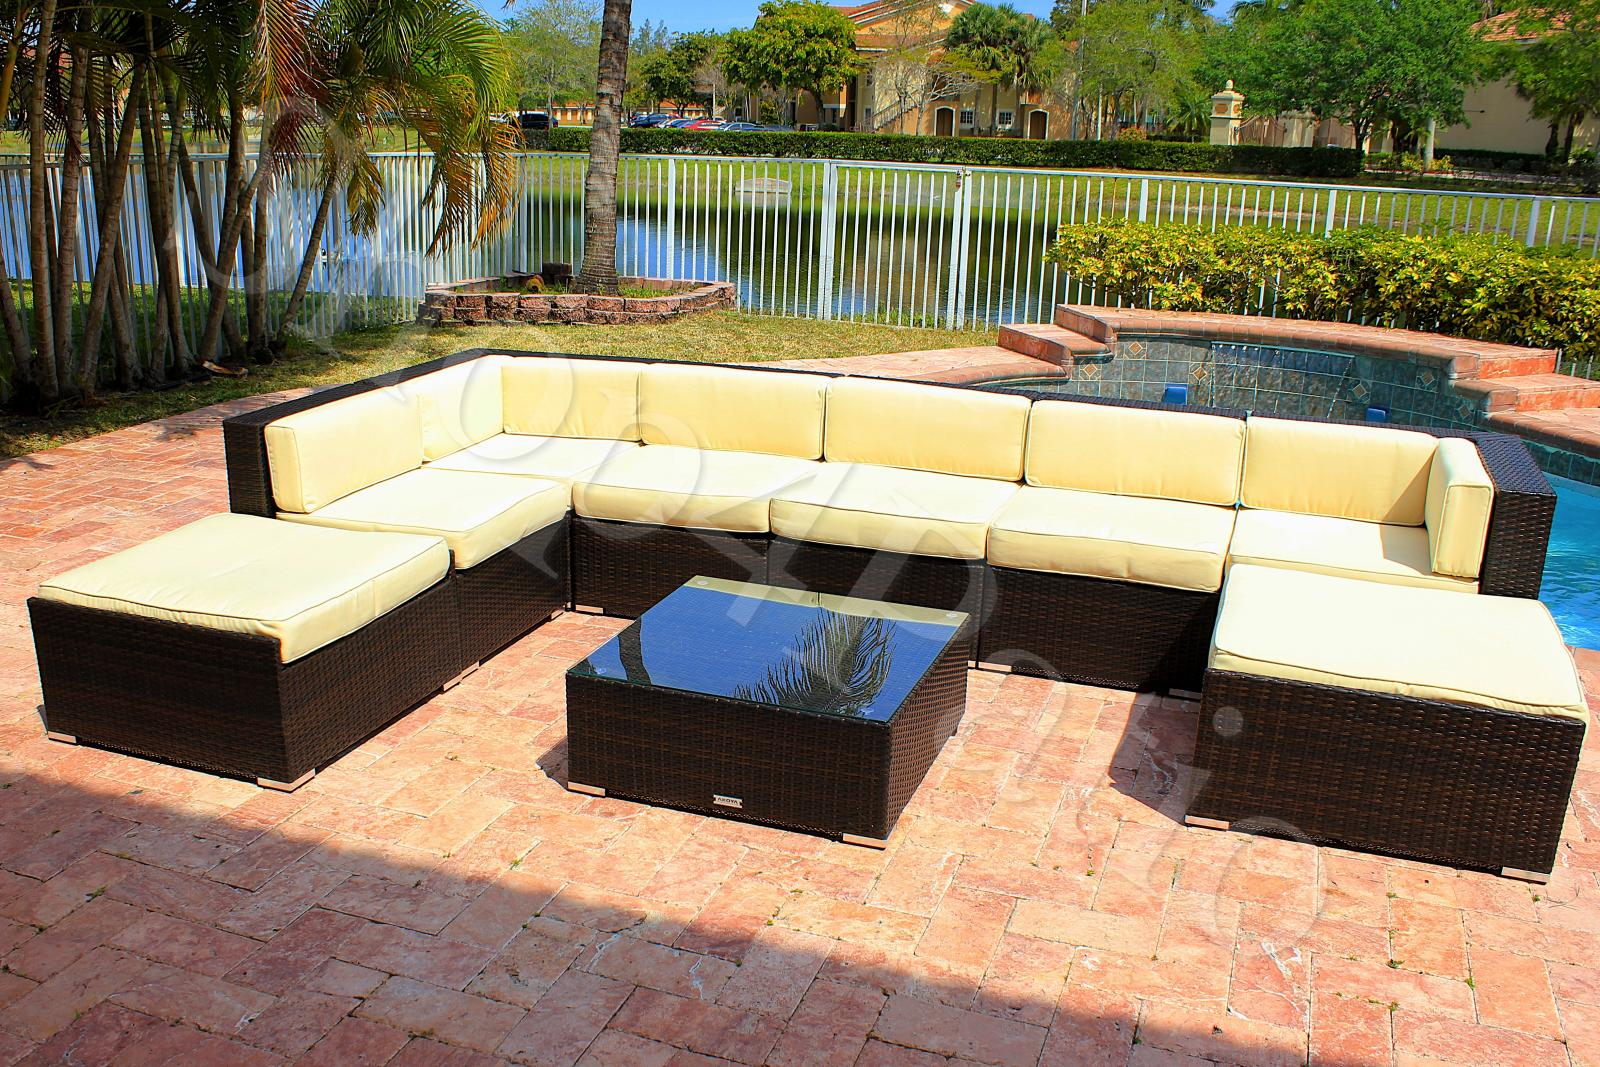 Modern Patio Furniture Garden Wicker Modular Sofa Sectional Outdoor 9 Piece Set Ebay